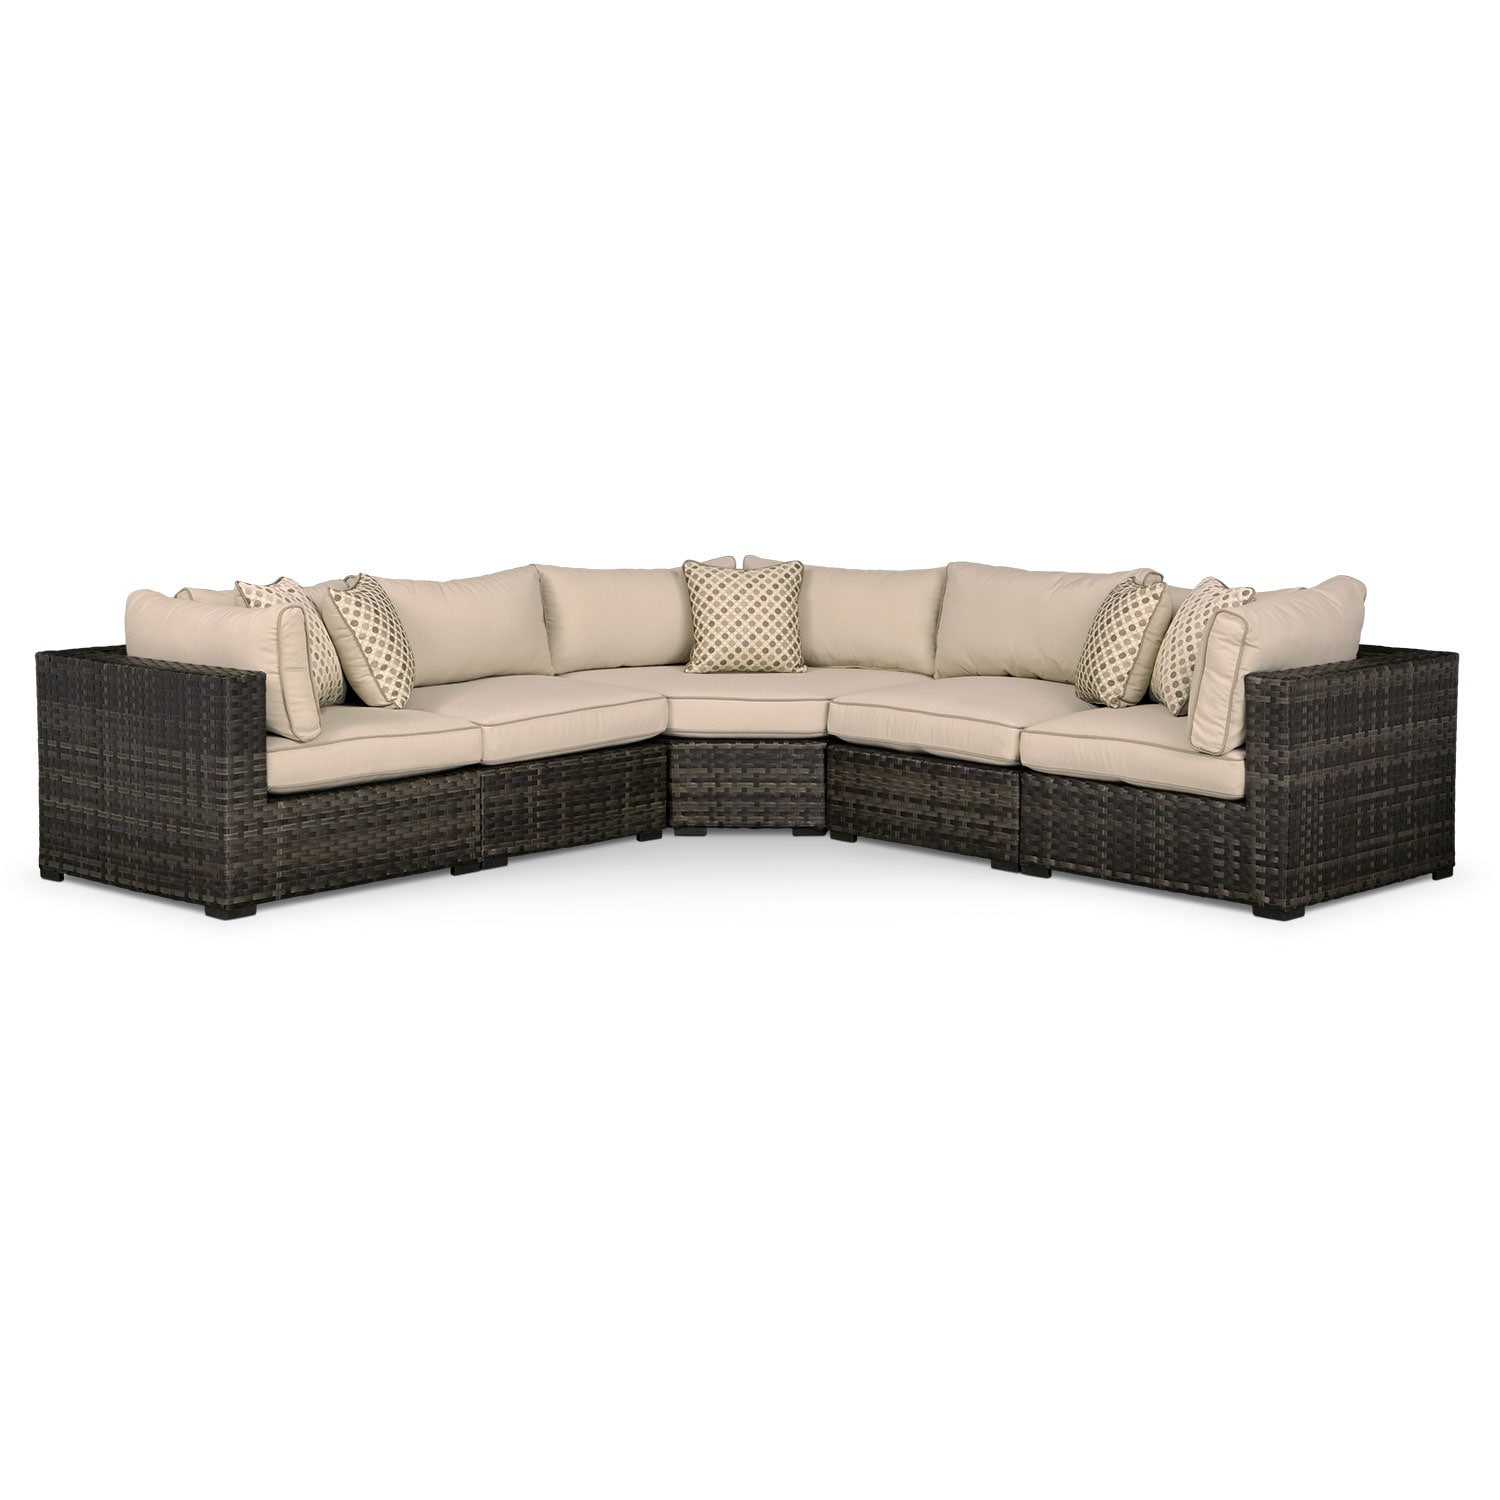 Regatta 5 Pc. Outdoor Sectional w/ Wedge